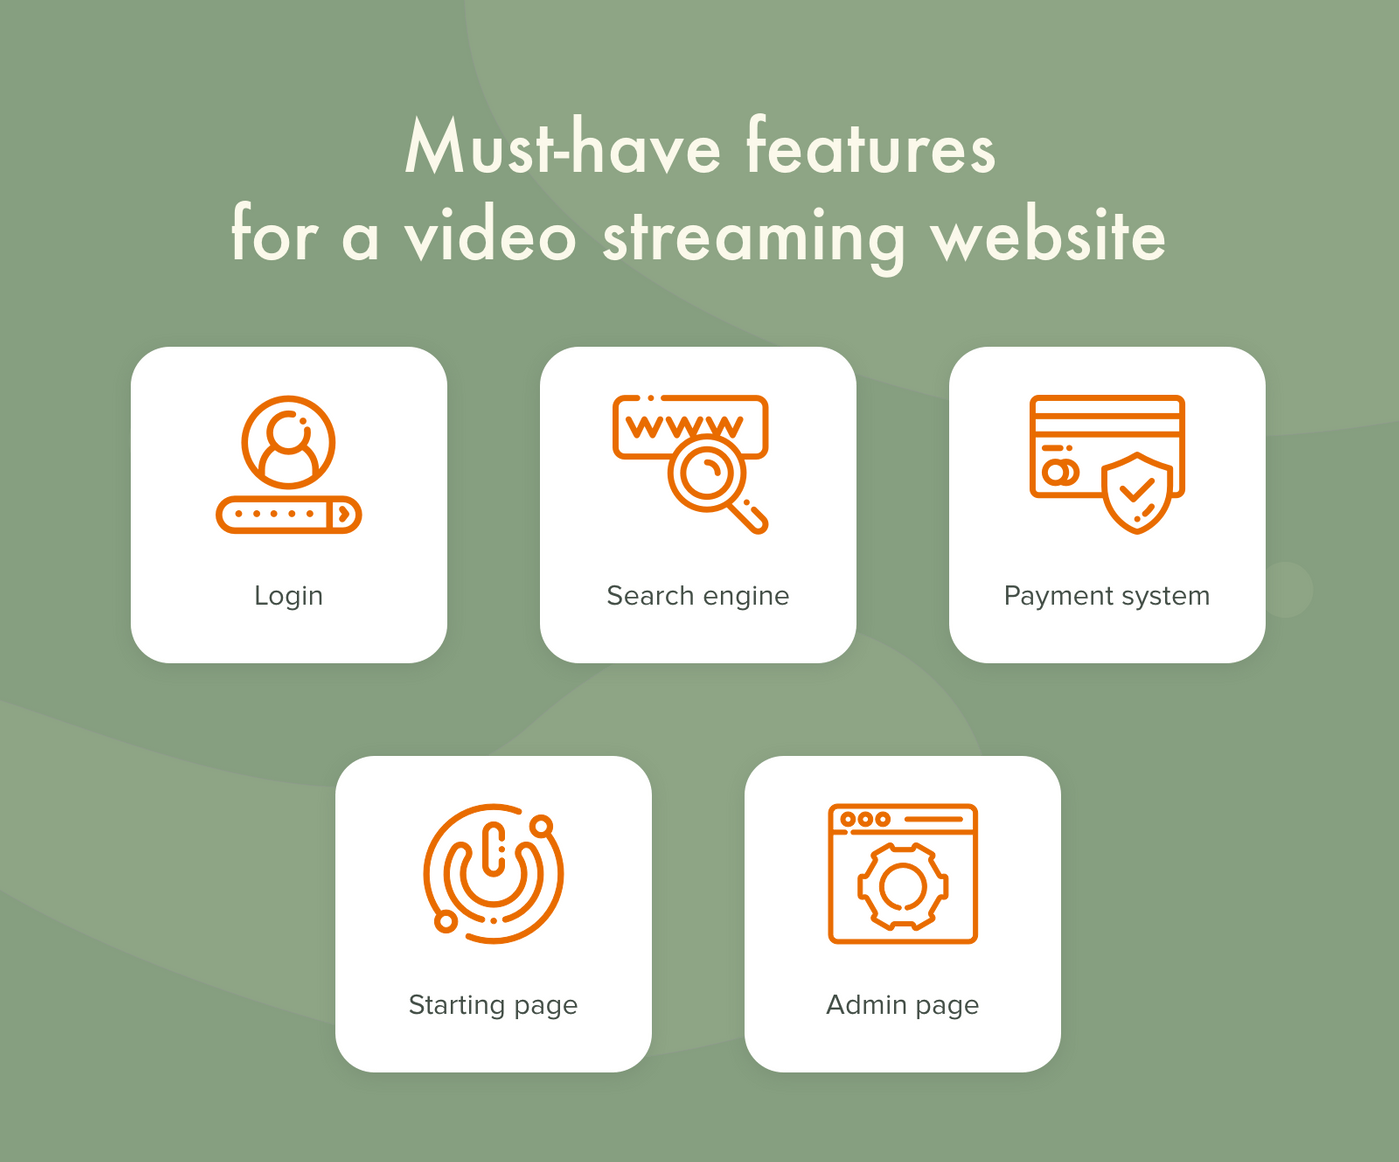 How to build a video streaming website MVP features